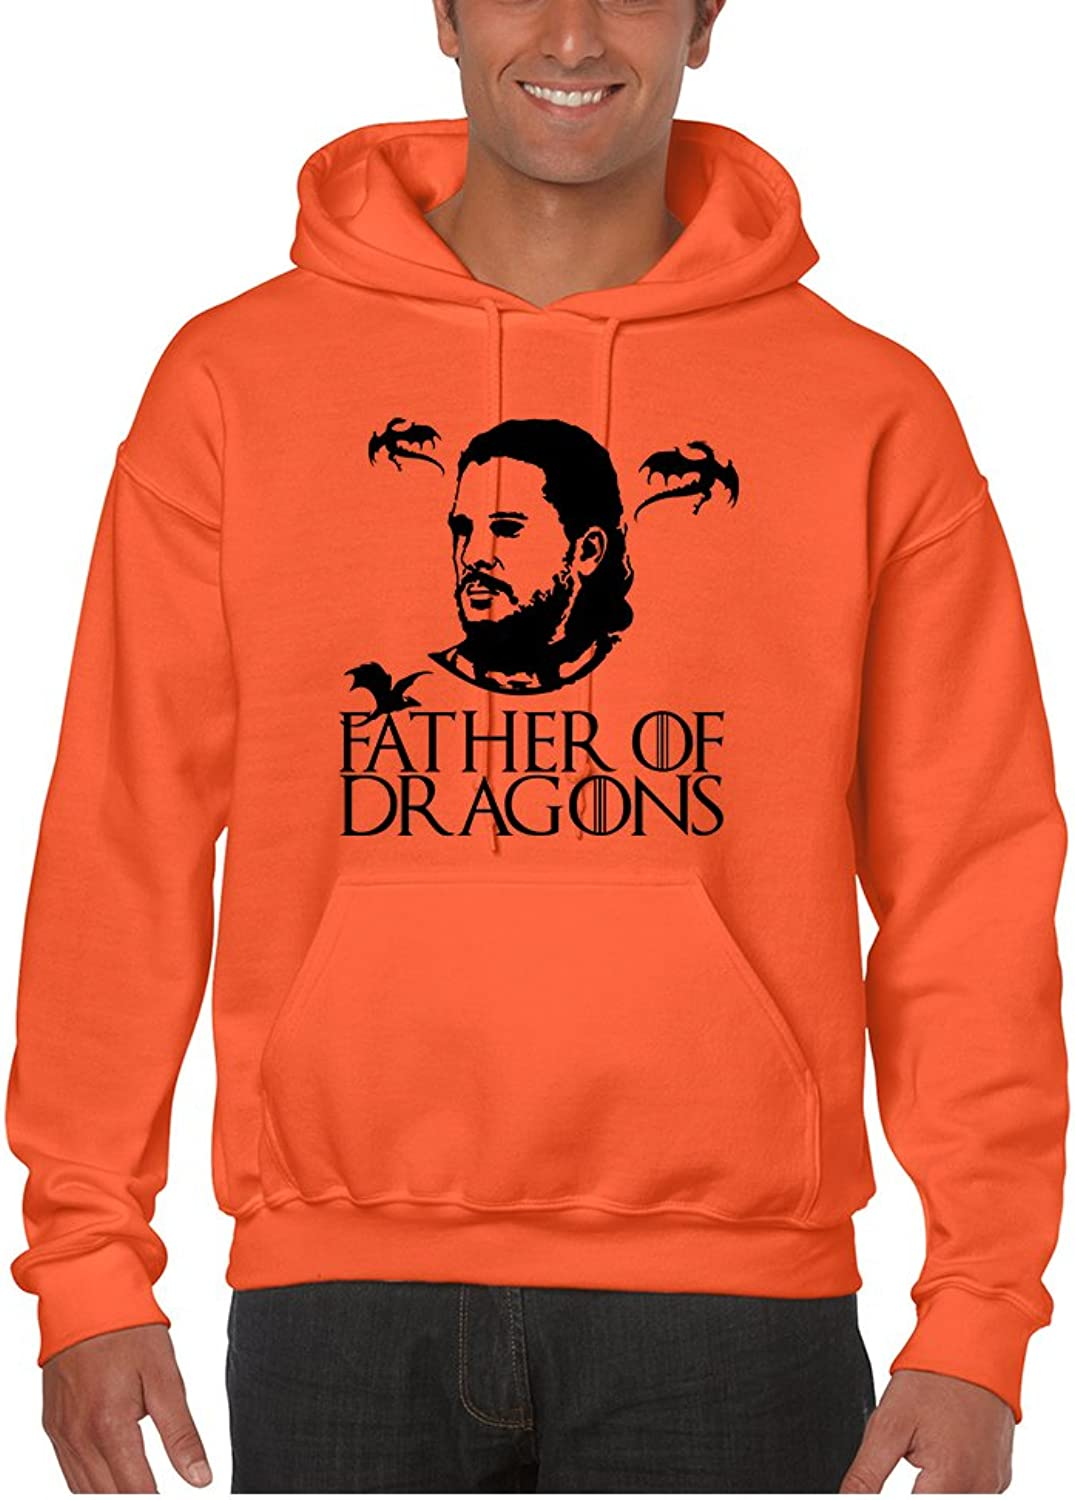 Allntrends Men's Hoodie Father Of Dragons Cool Gift Hot Shirt